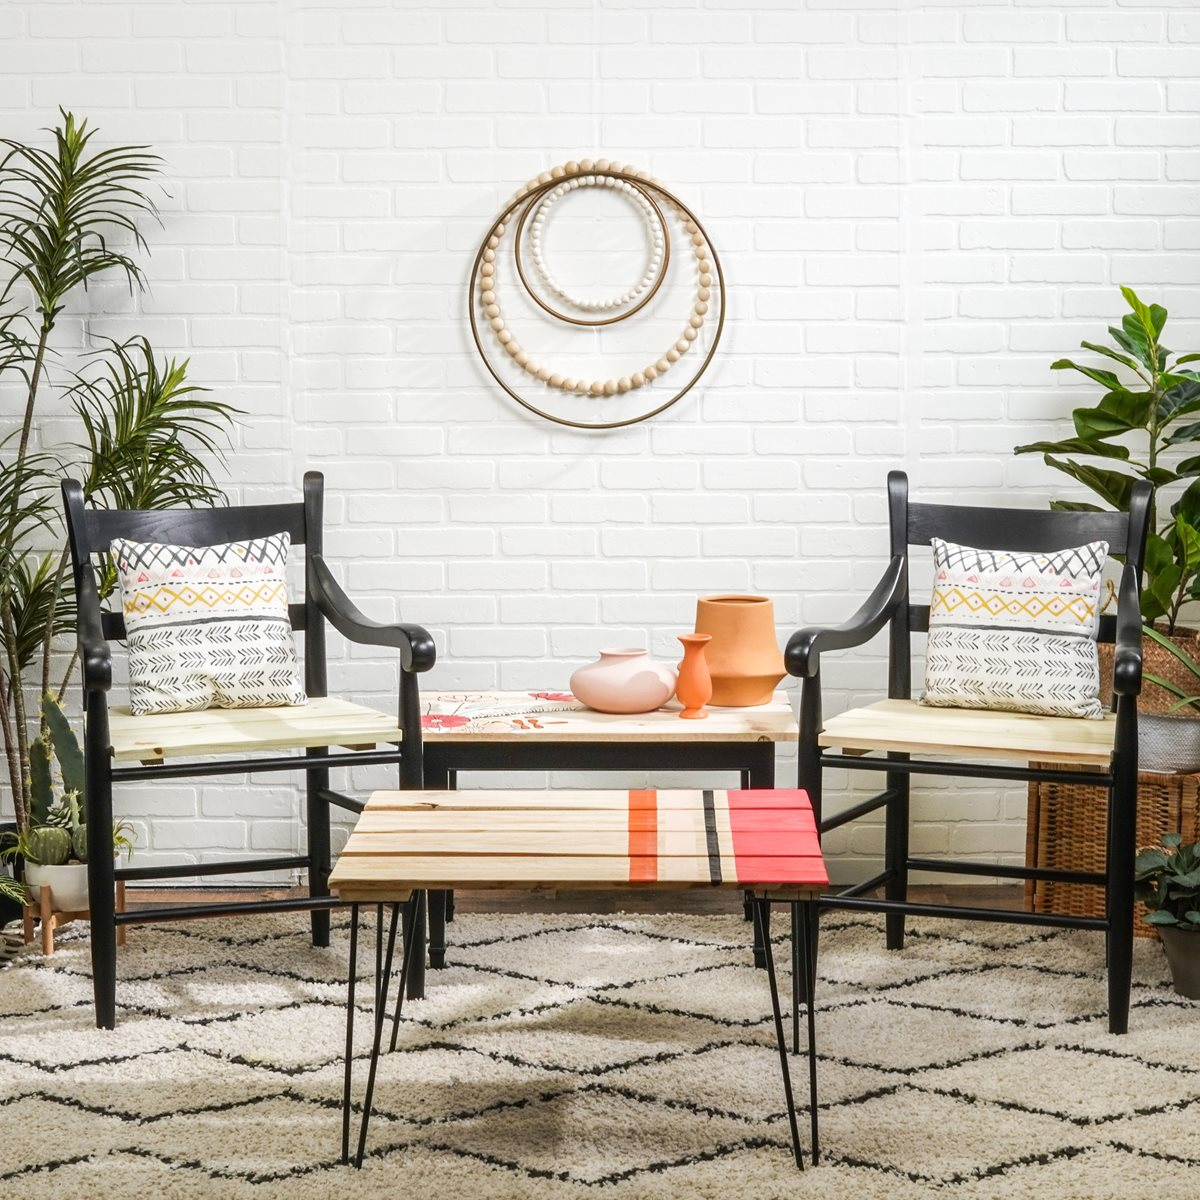 Upcycled Dining Chairs